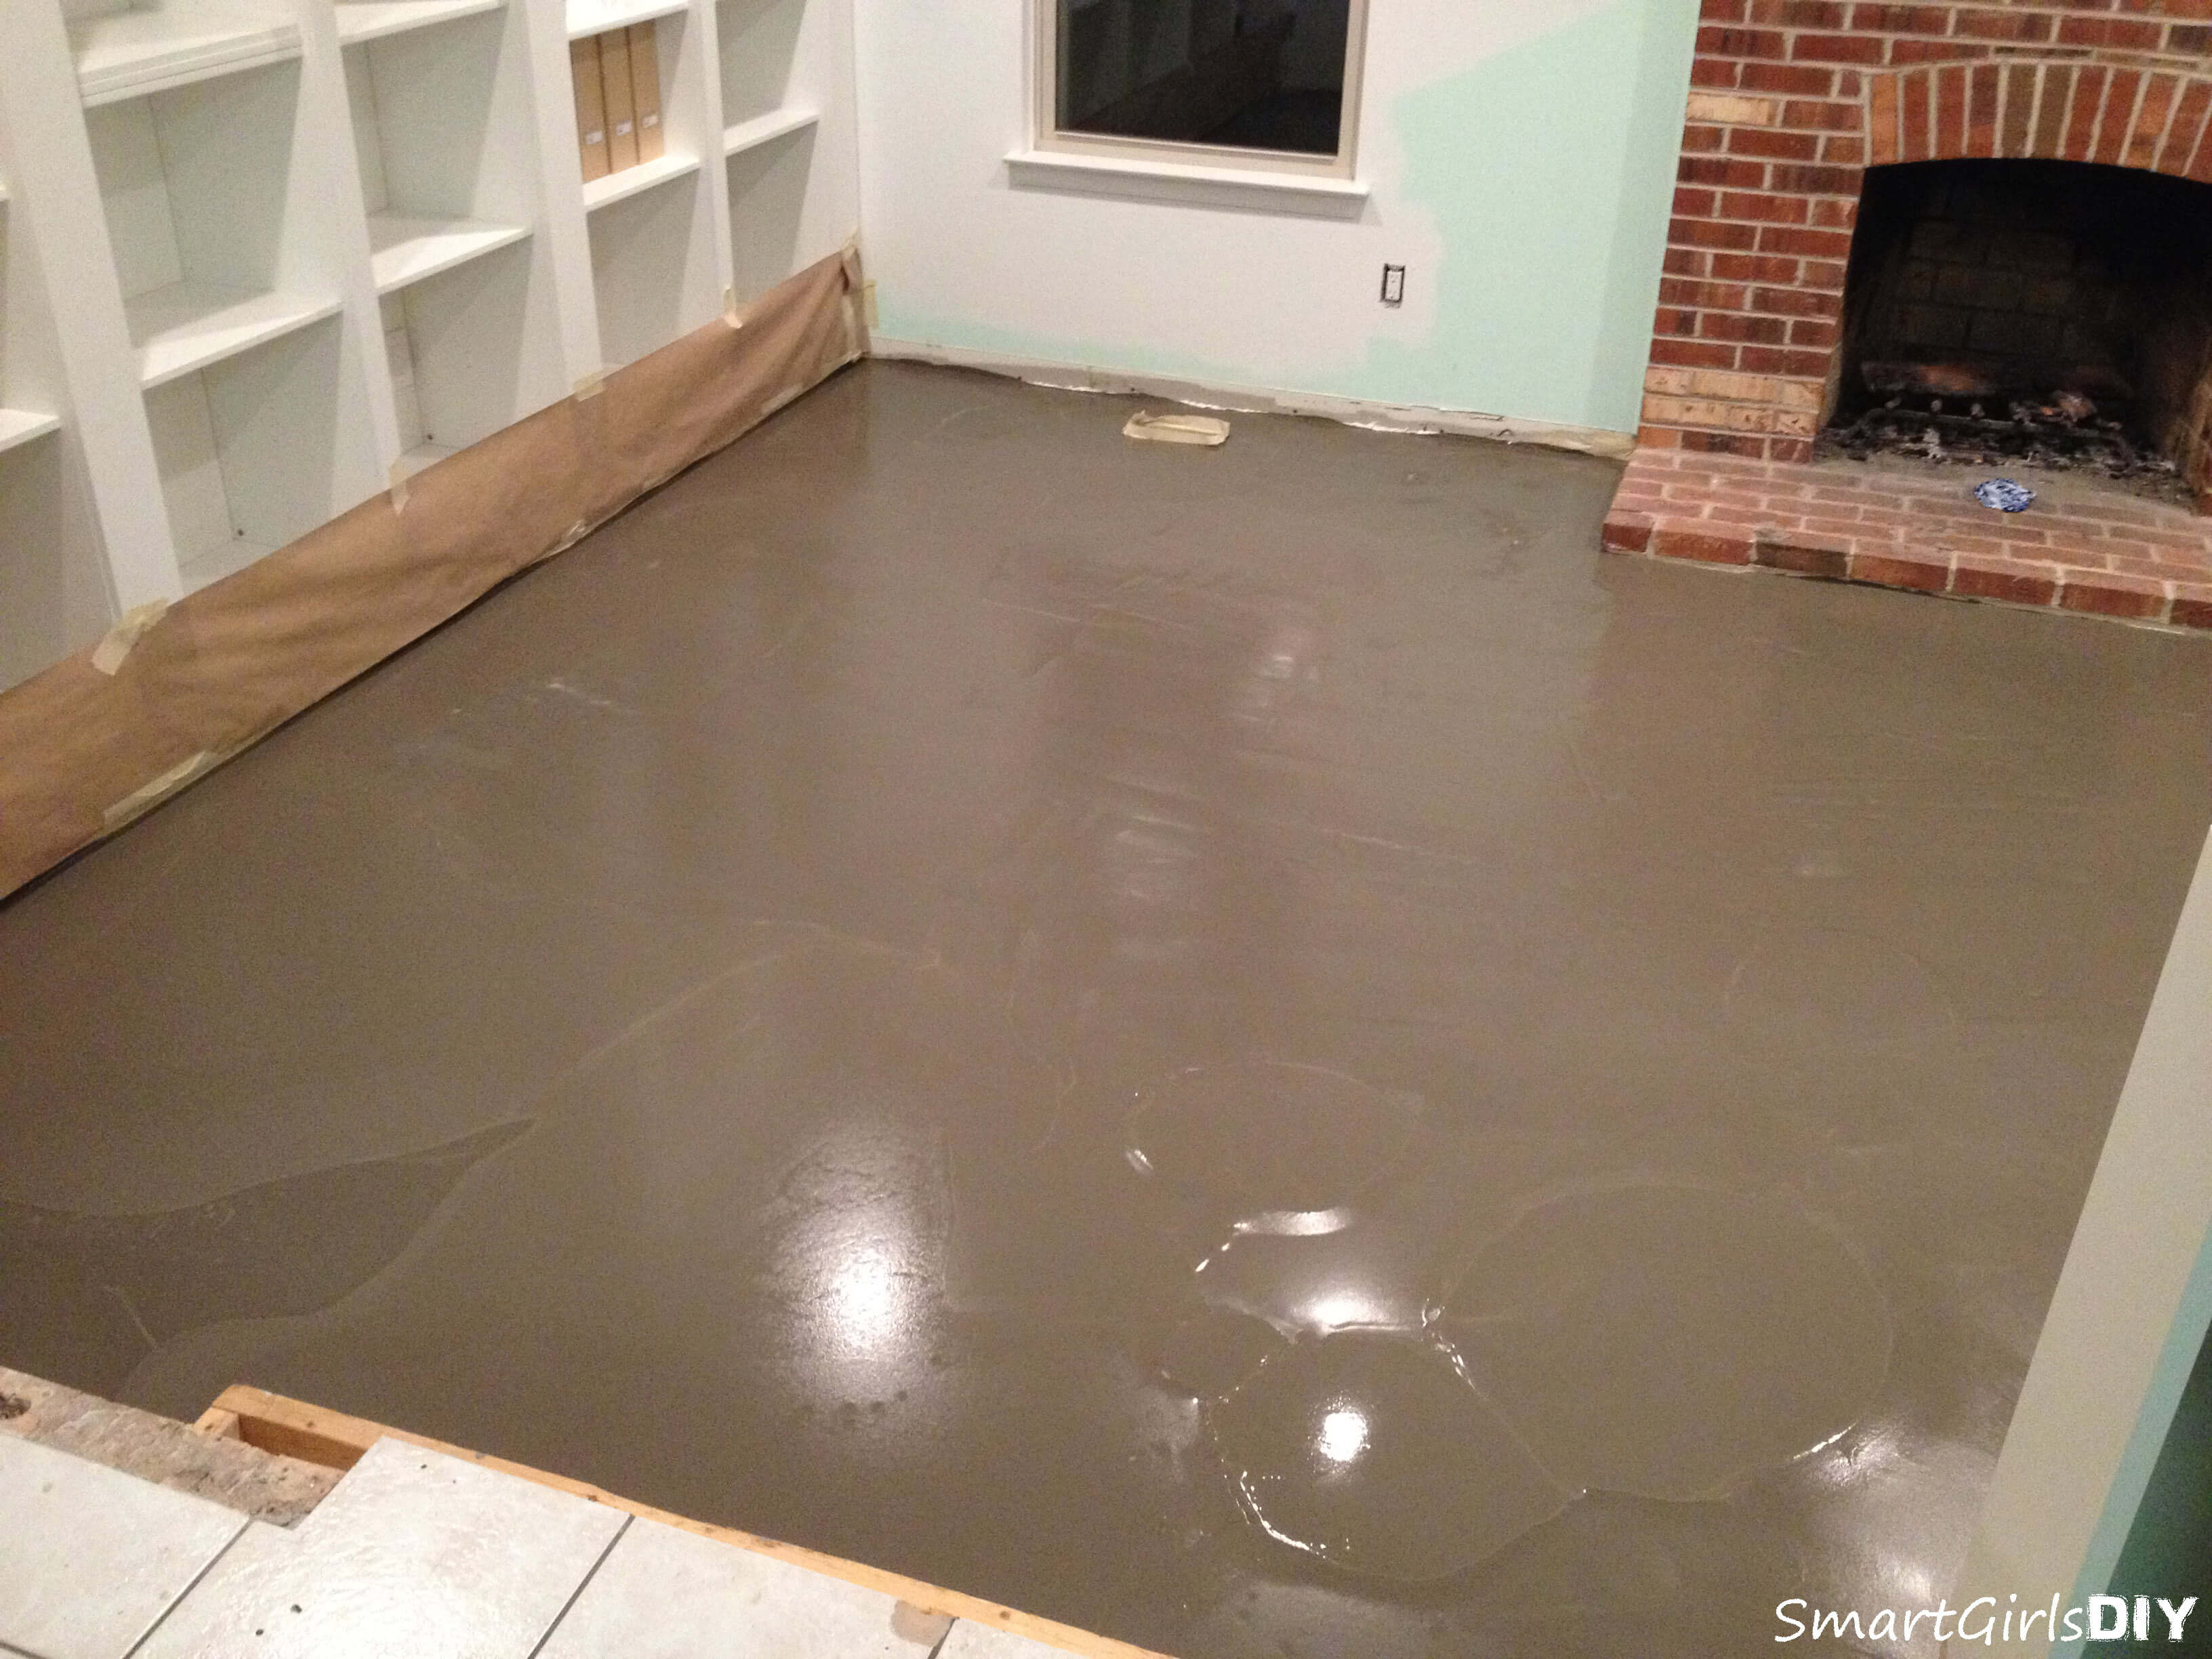 I always wanted to try self leveler family room 9 applying self leveling underlayment how to use self leveler on family room floor solutioingenieria Image collections